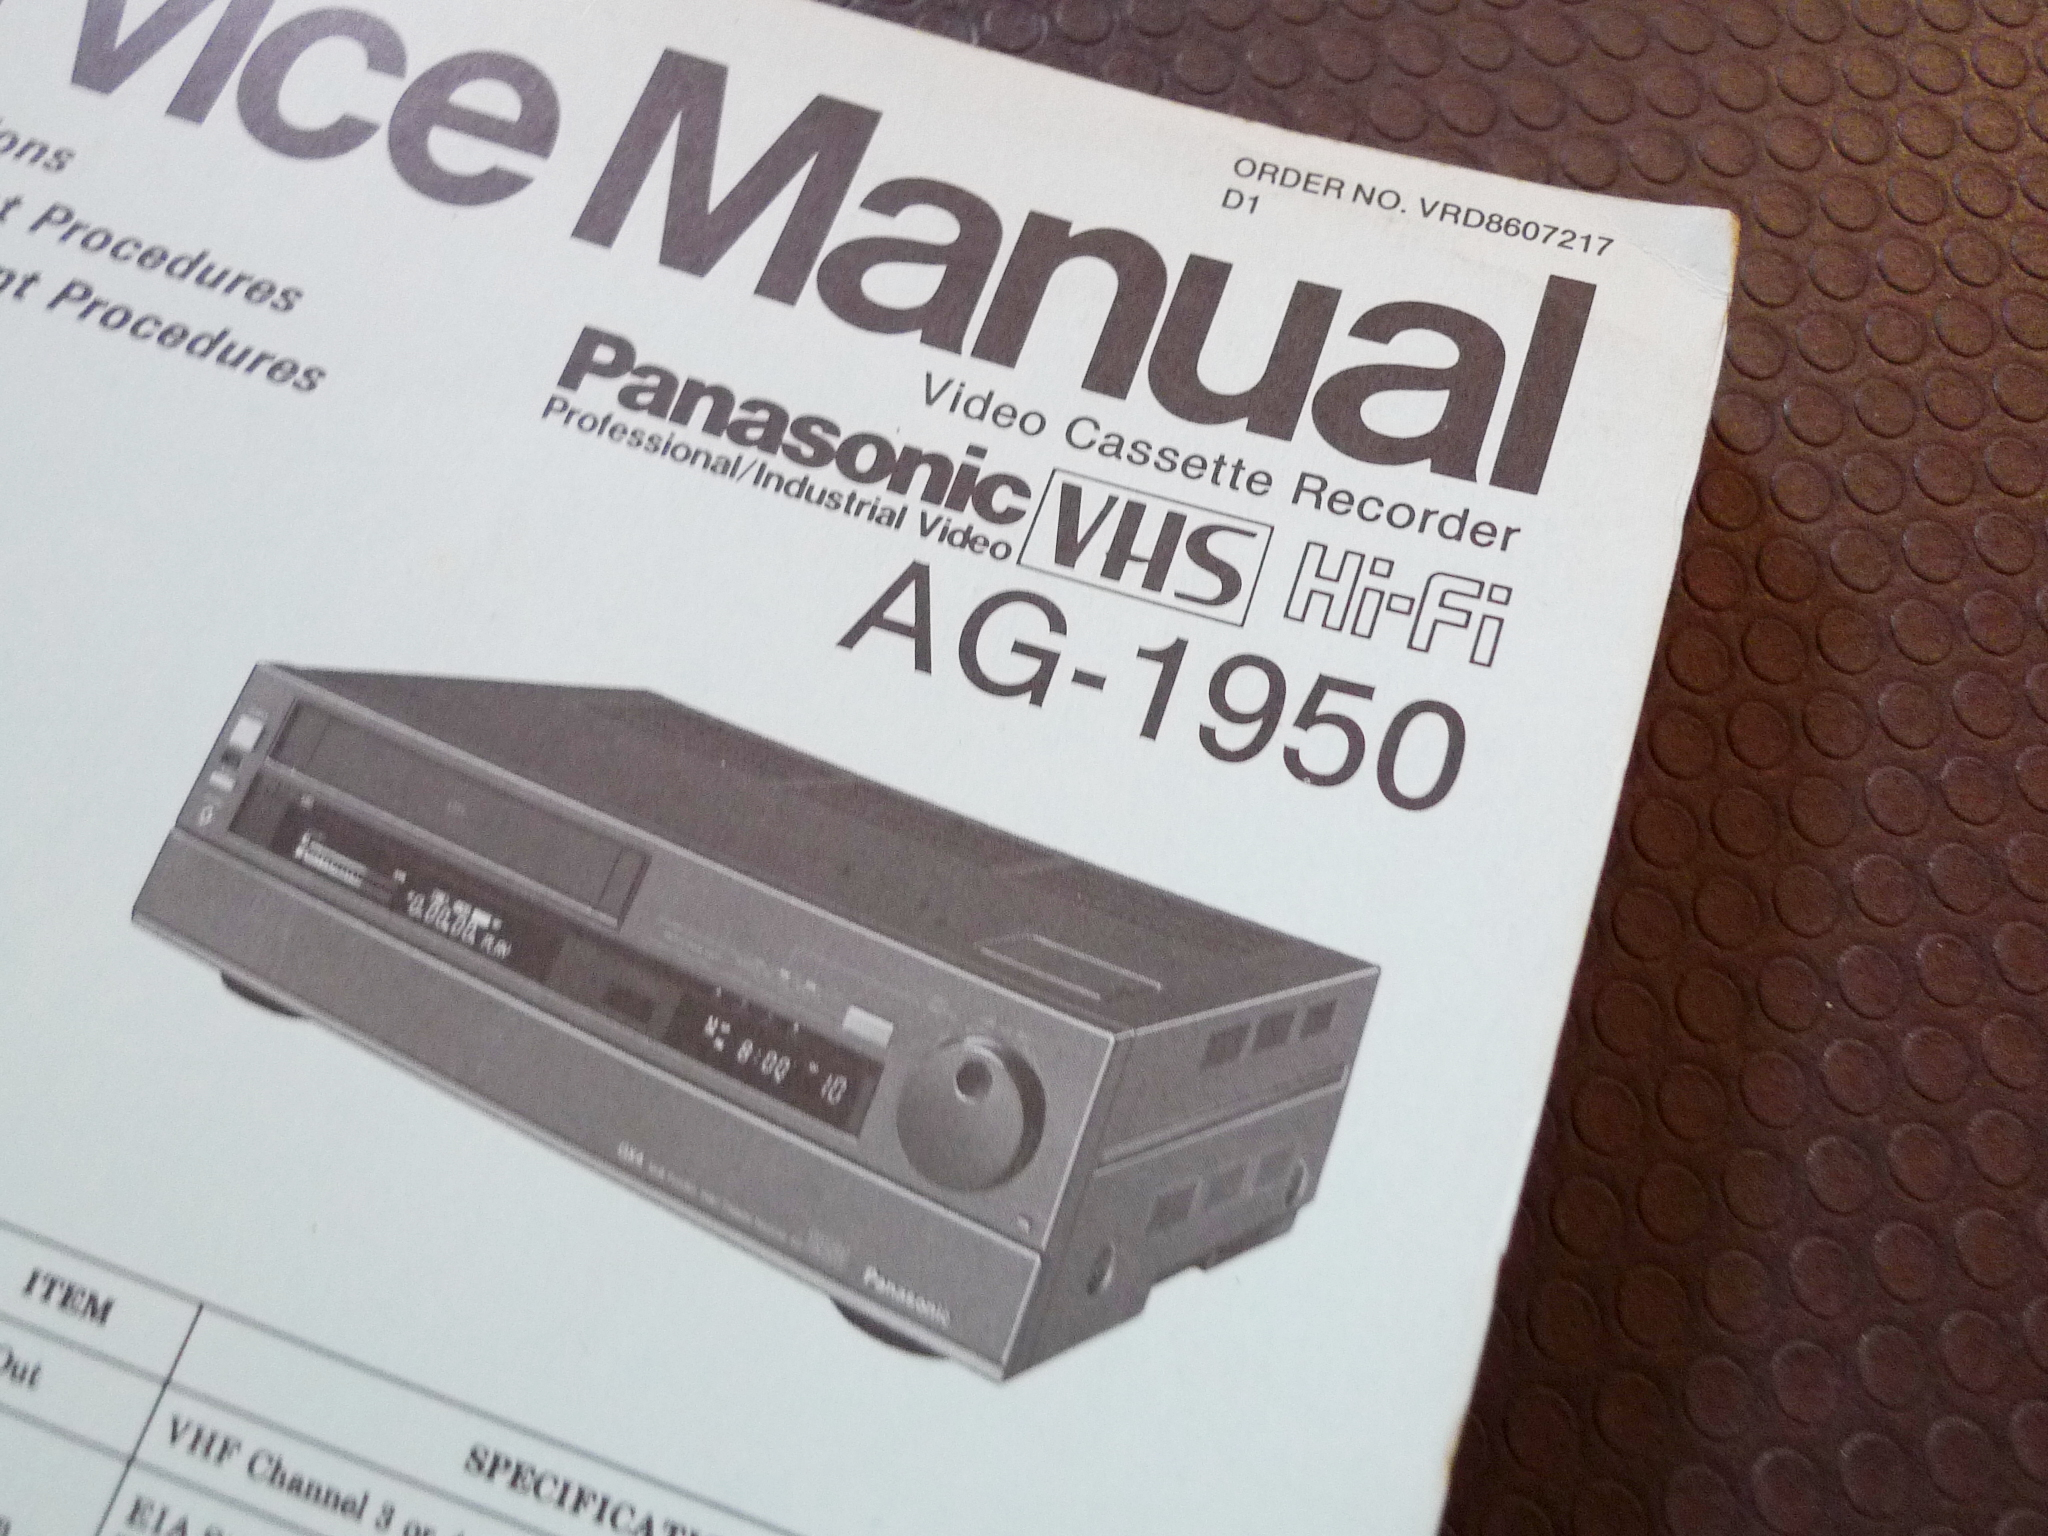 ... Array - vintage panasonic ag 1950 video cassette recorder service manual  ebay rh ebay com